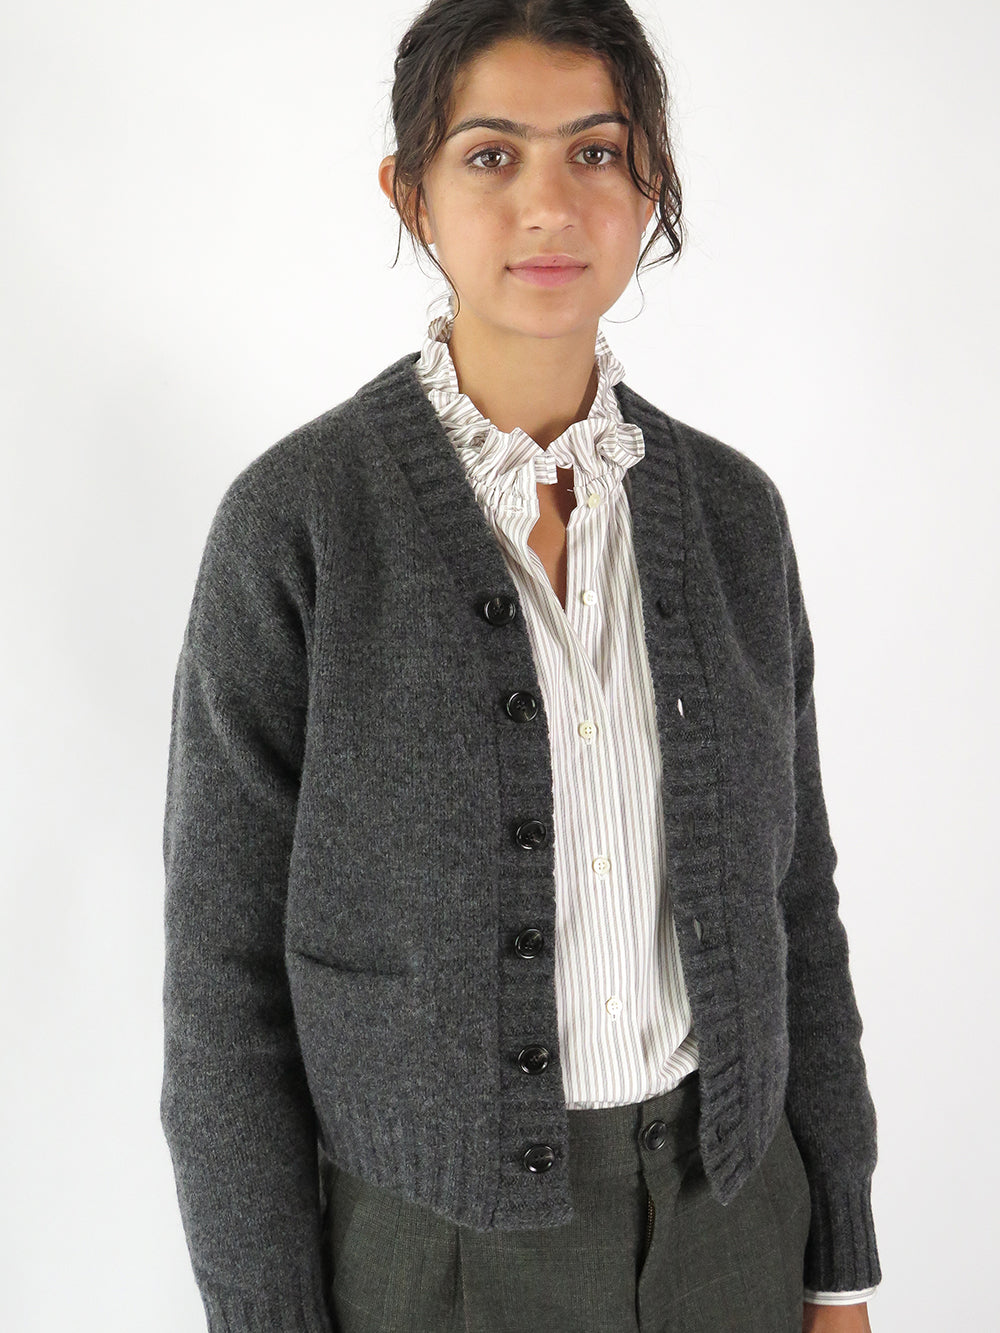 nico tony cardigan in charcoal